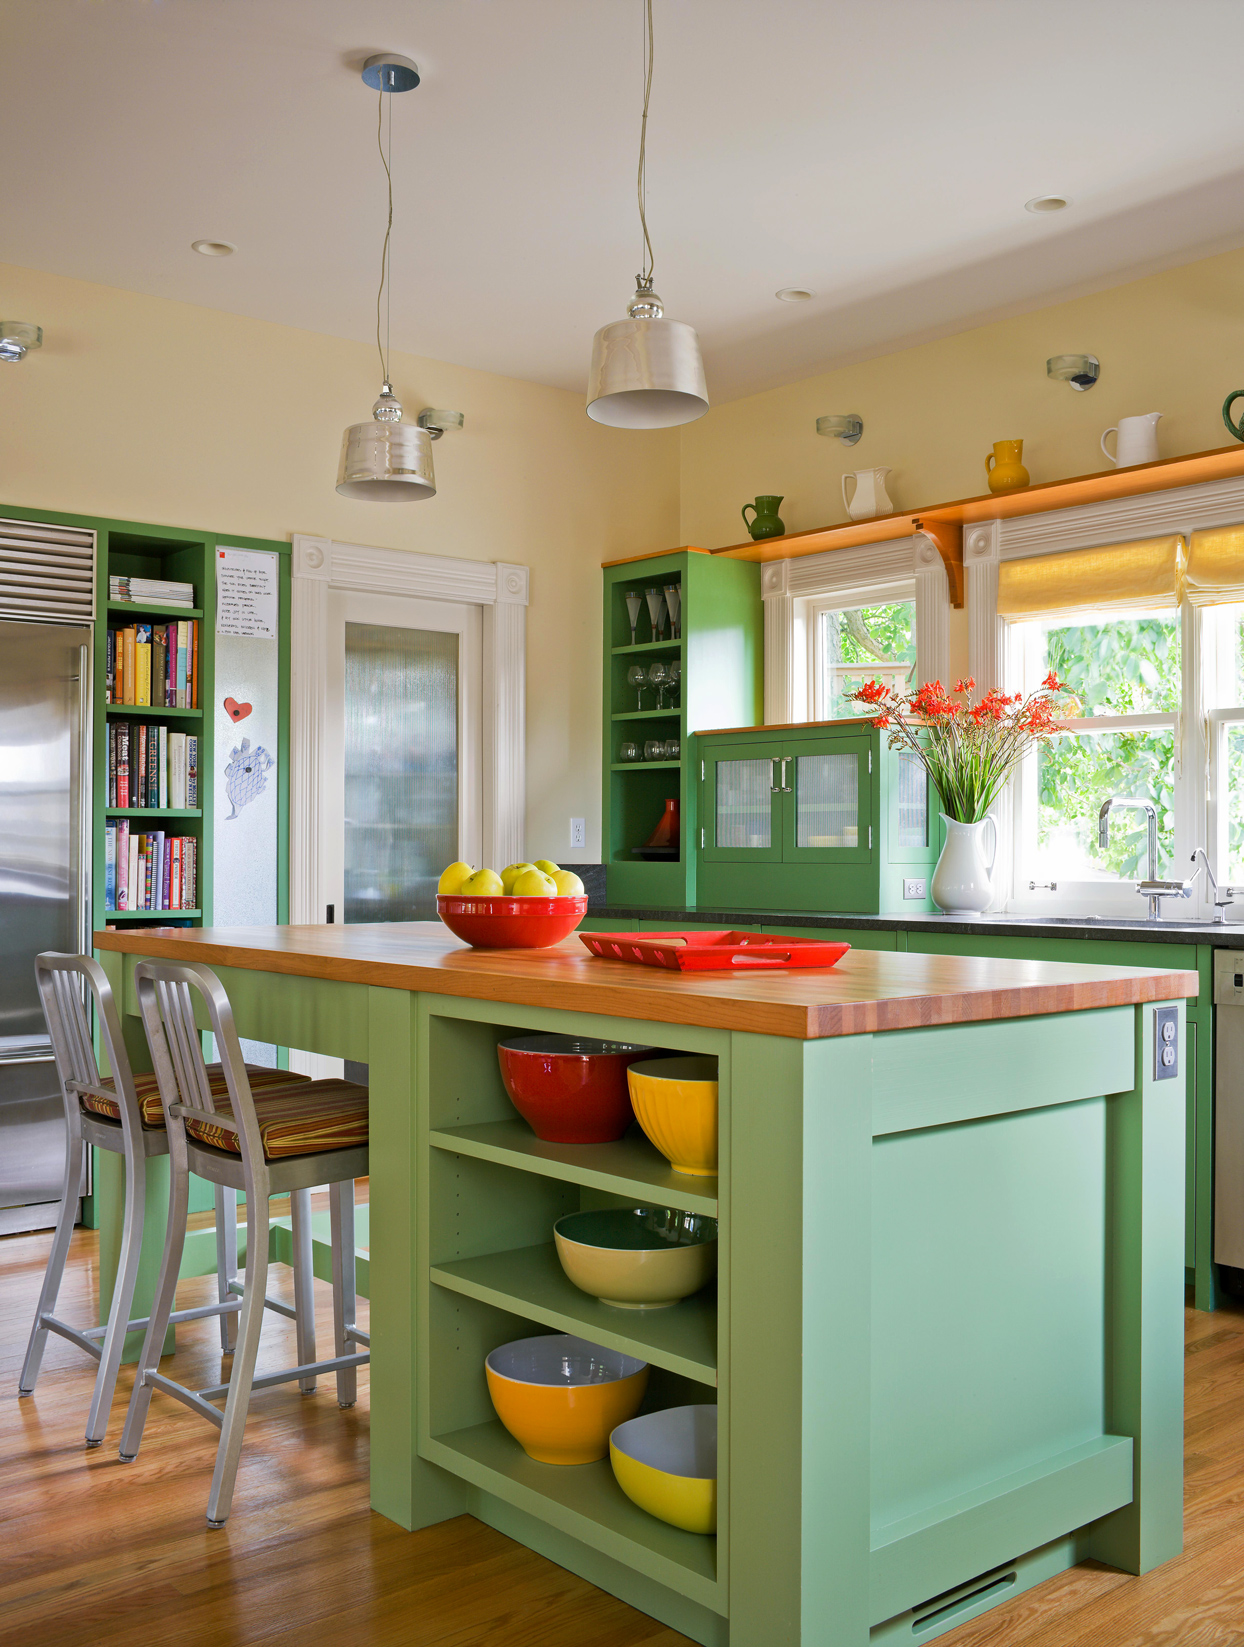 green kitchen cabinets with silver pendant lights